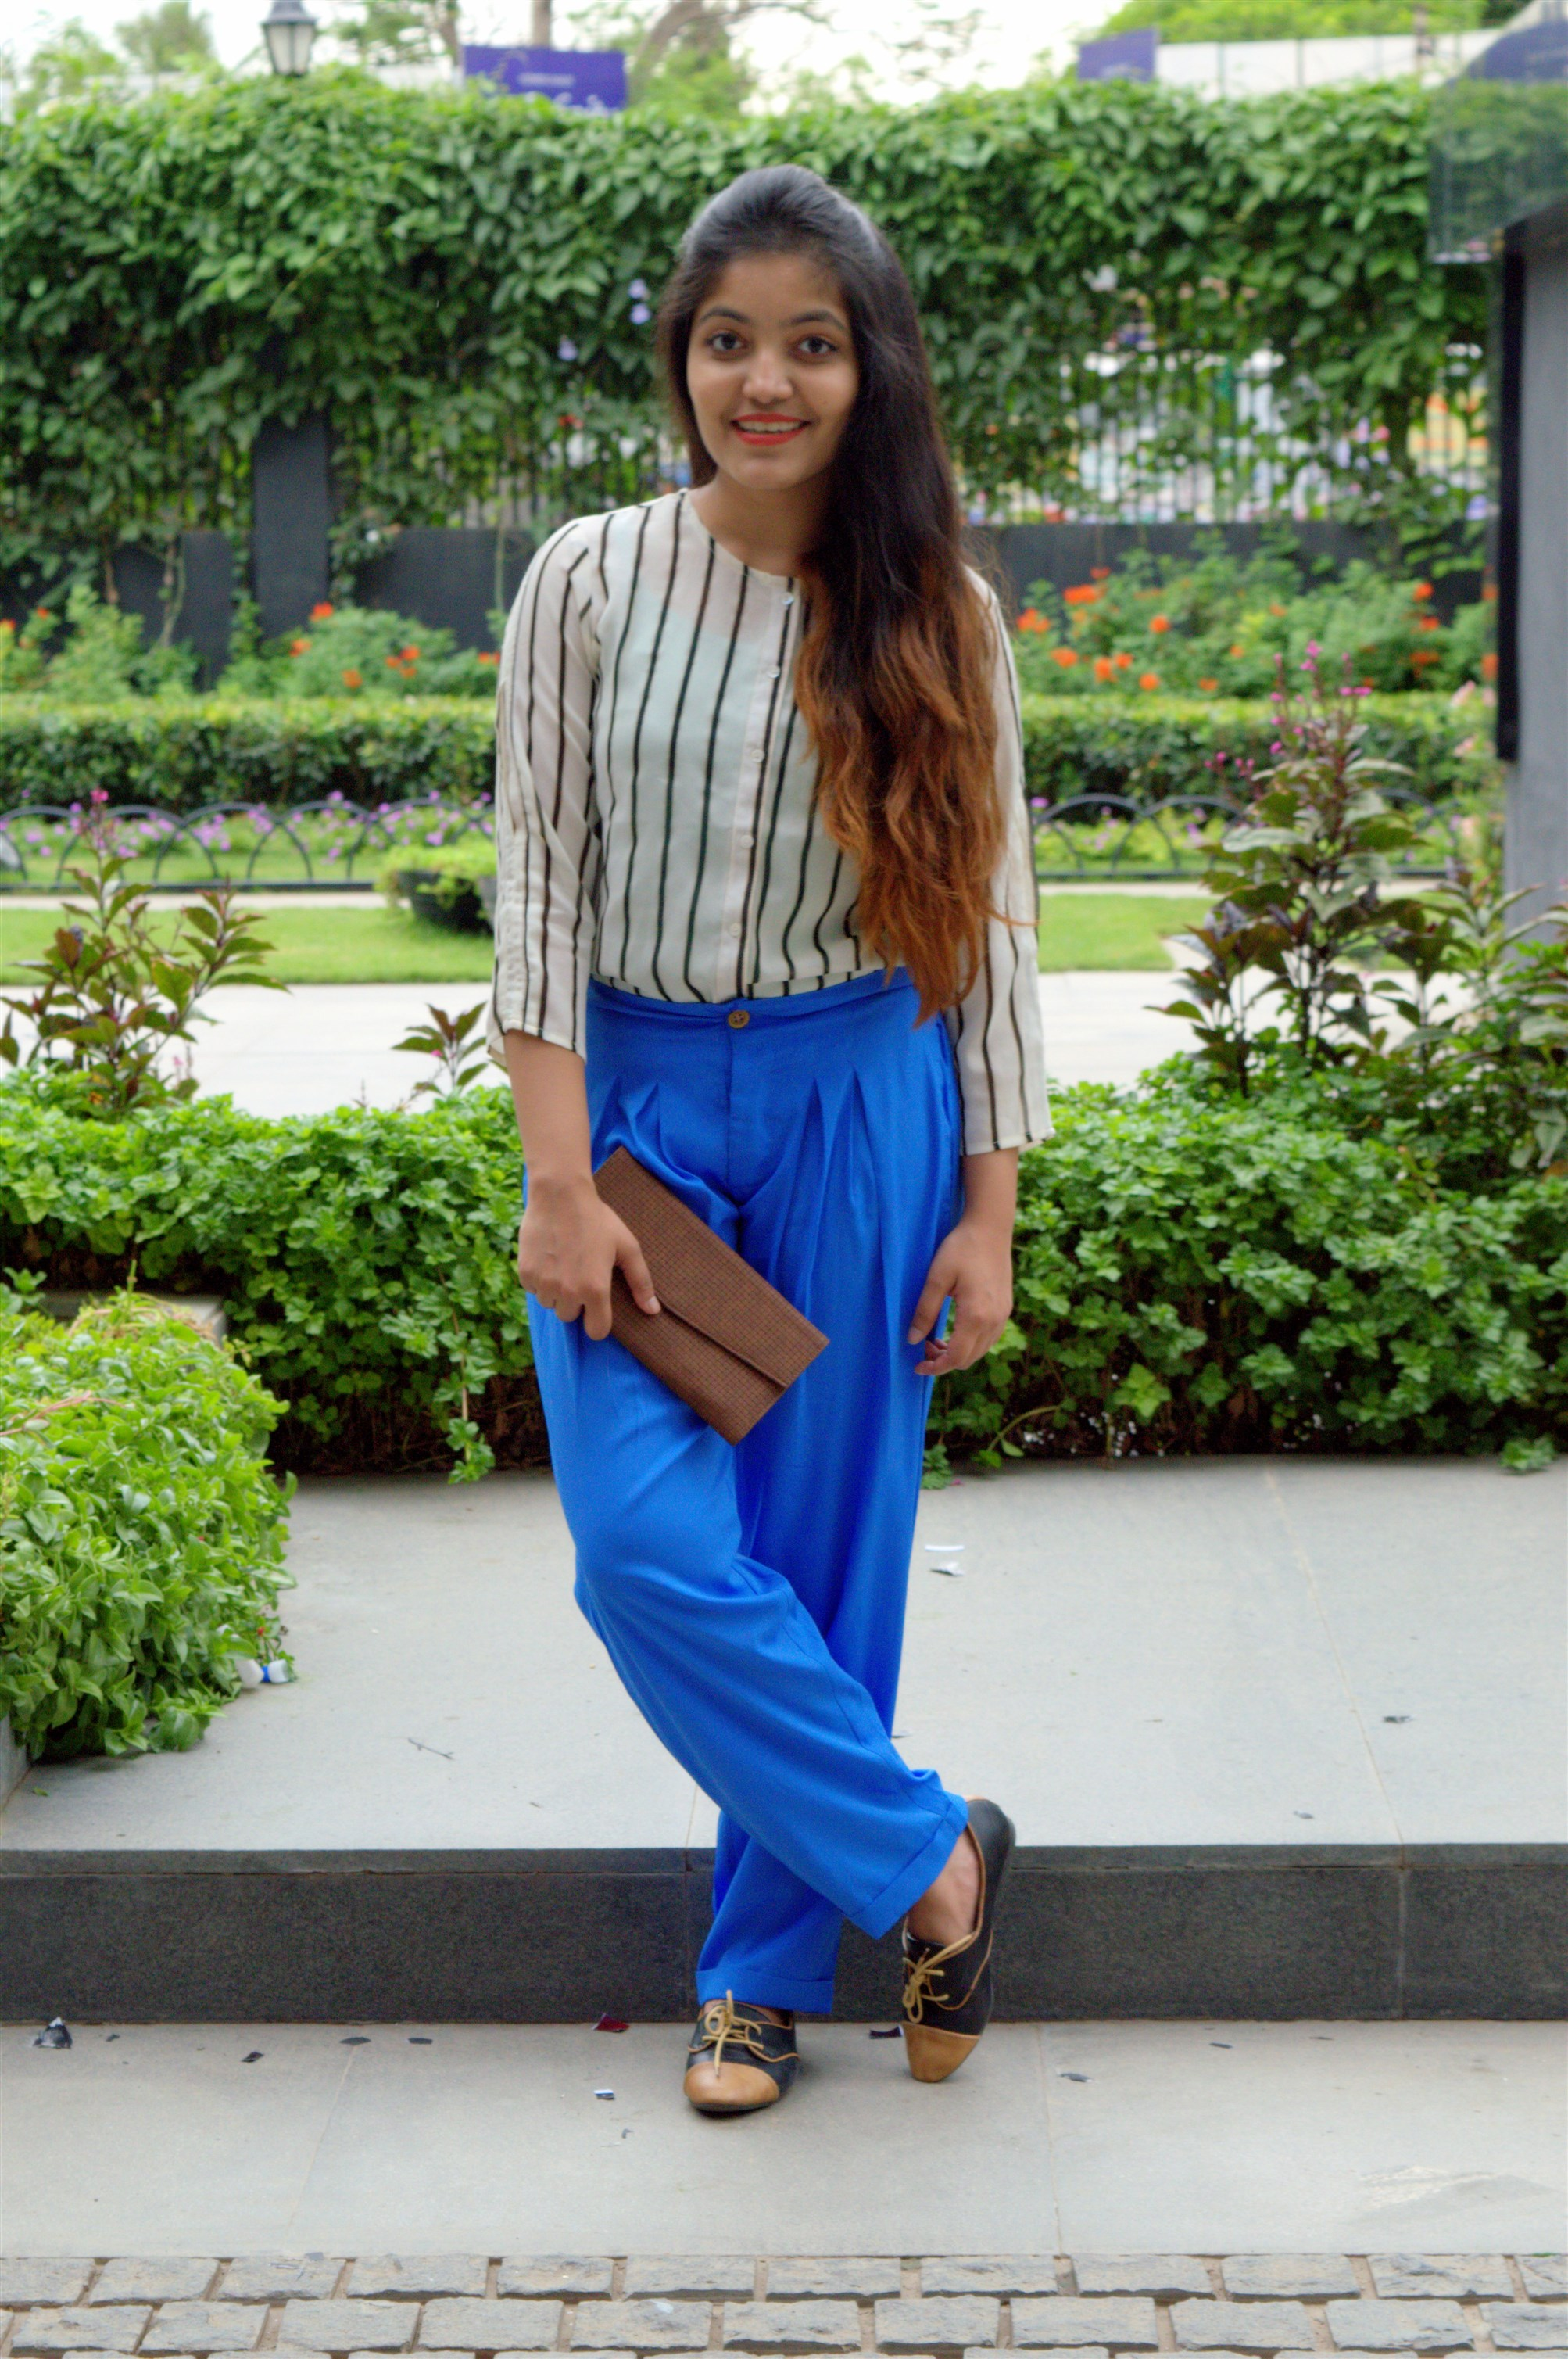 american swan pleated palazzos with striped top how to style palazzos the jeromy diaries